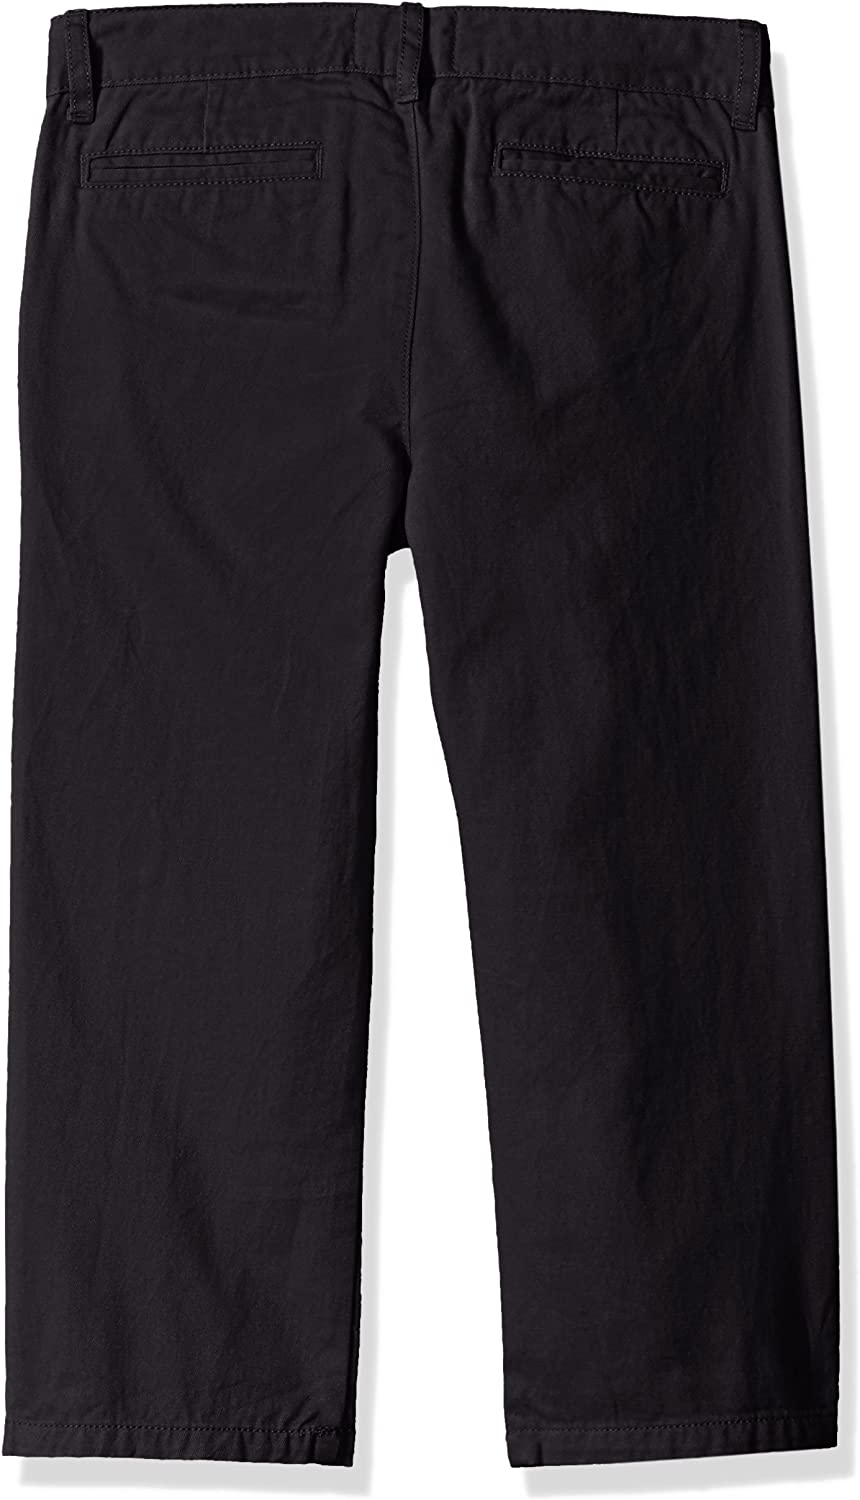 The Childrens Place Boys His Pleated Chino Pants